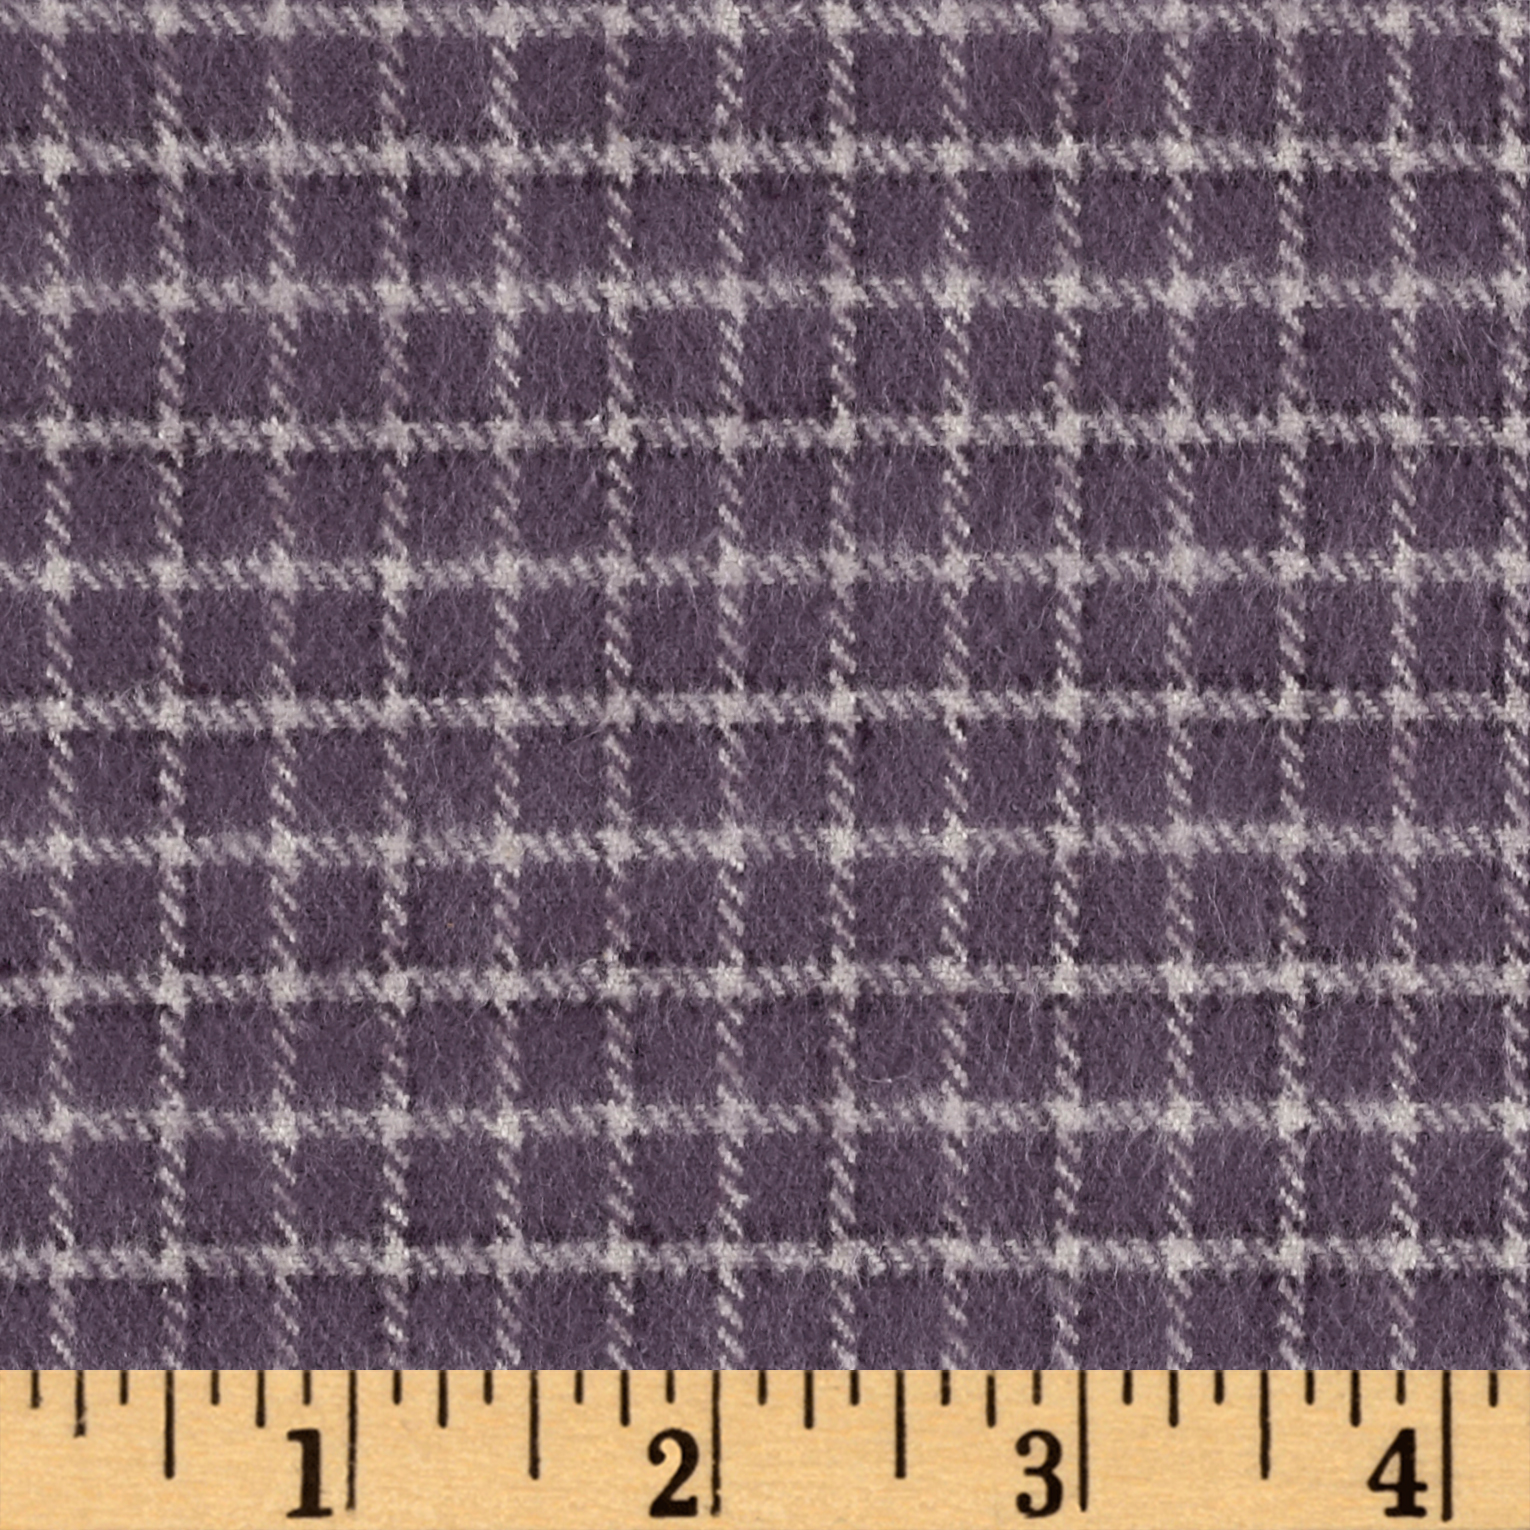 Marcus Primo Plaids Check Plum Fabric by Marcus in USA